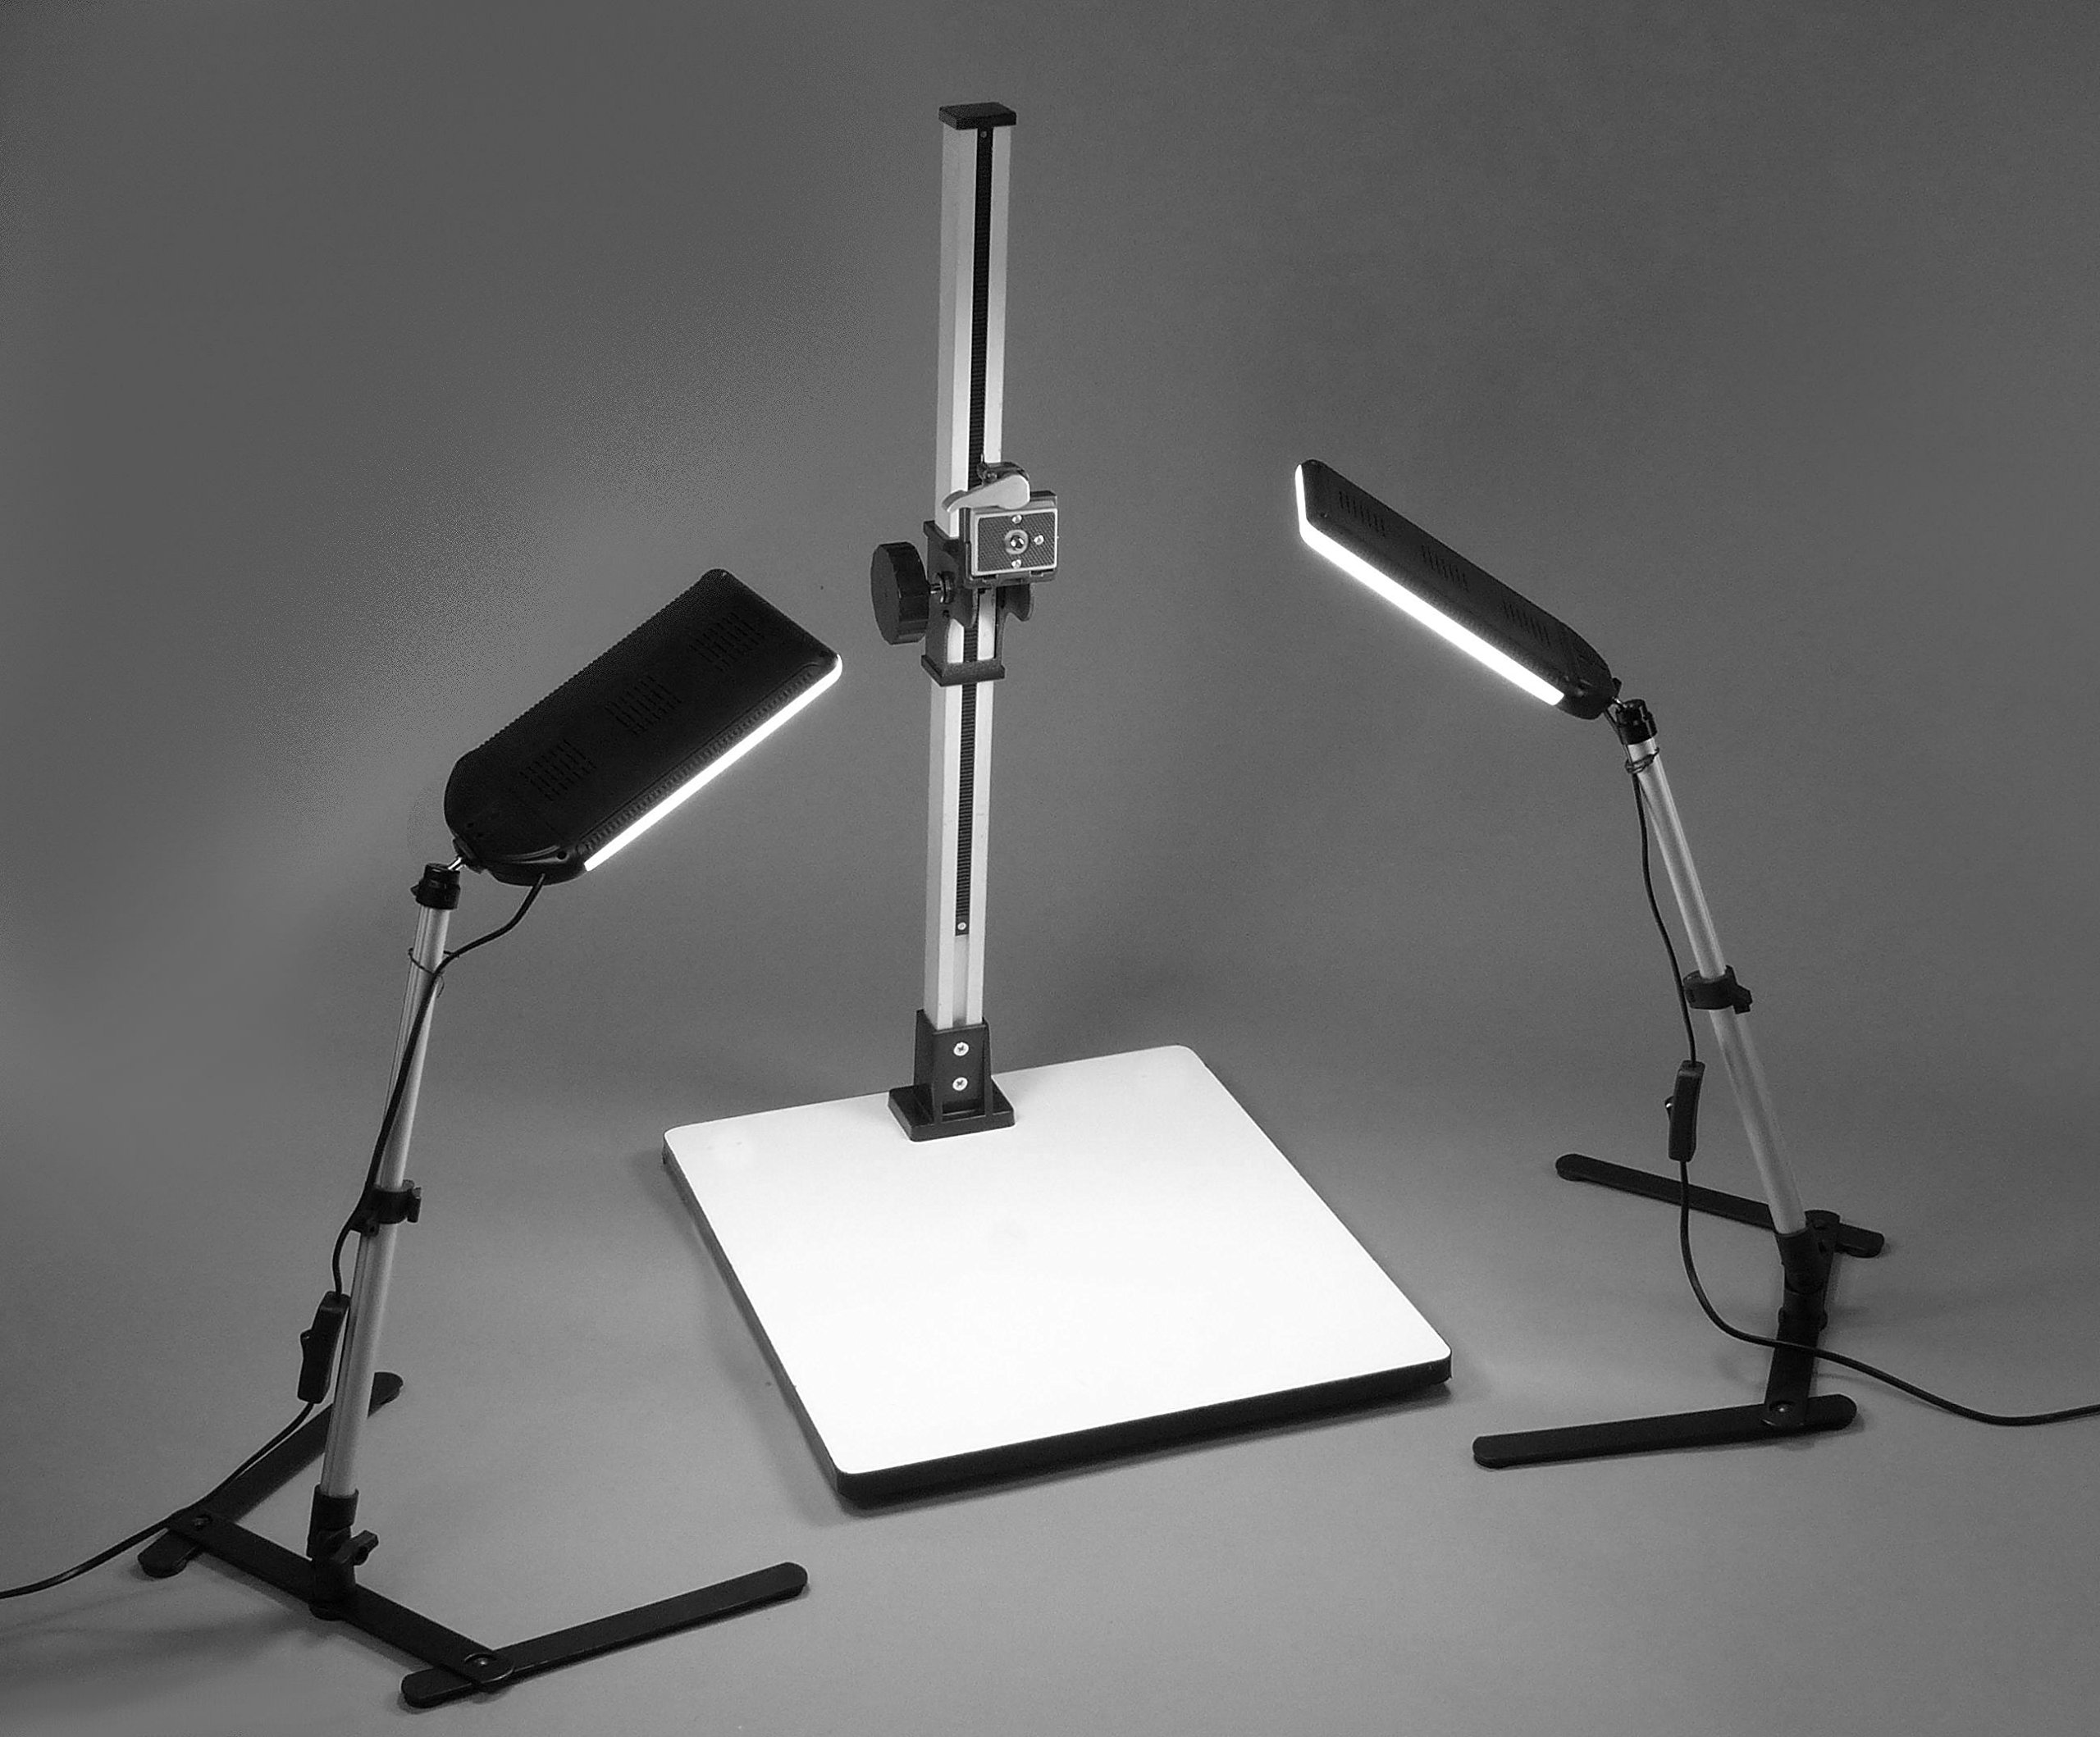 ALZO 100 LED Macro Studio Tabletop Product Photography Kit for Shooting Jewelry and Small Objects by ALZO digital